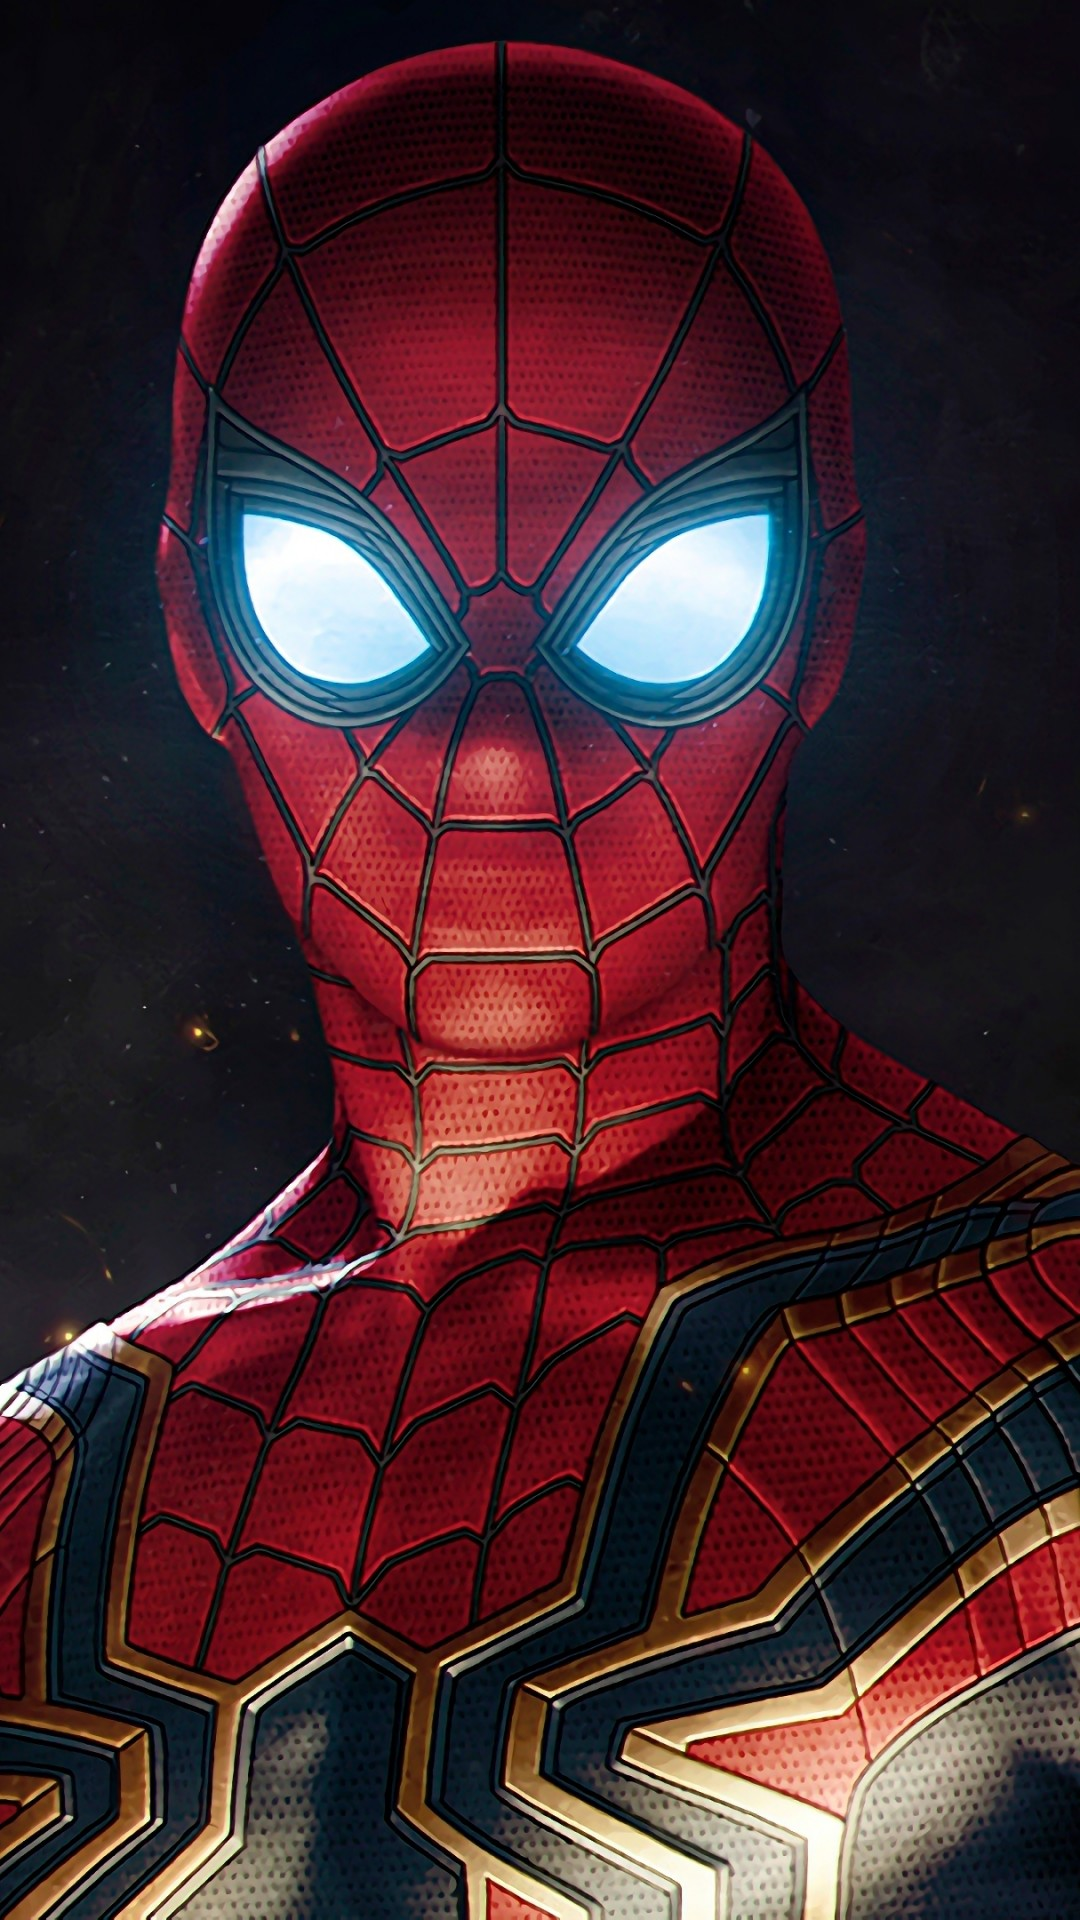 Infinity War Spiderman Download Avengers 4k Wallpapers For Iphone